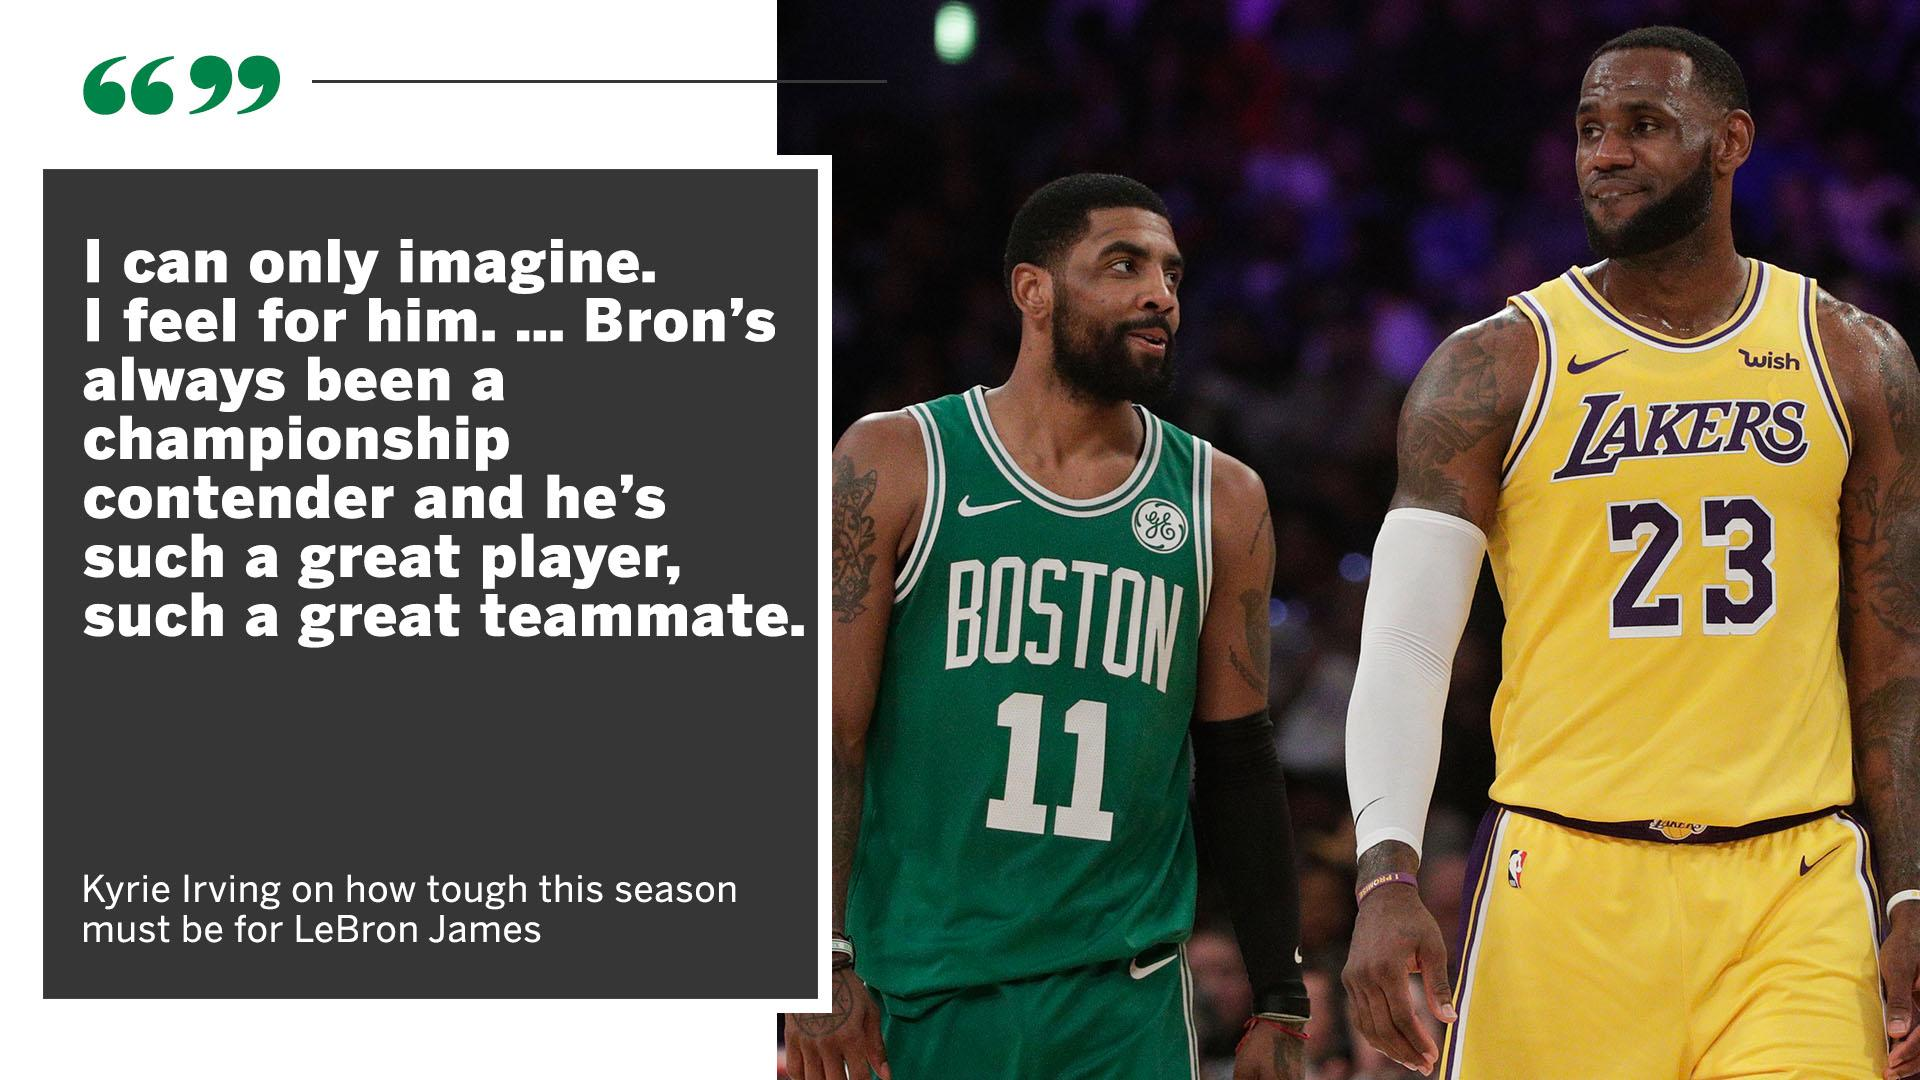 With the Lakers' playoff chances dwindling, Kyrie knows this season must be tough for his old teammate. https://t.co/b7MDXxTv6P